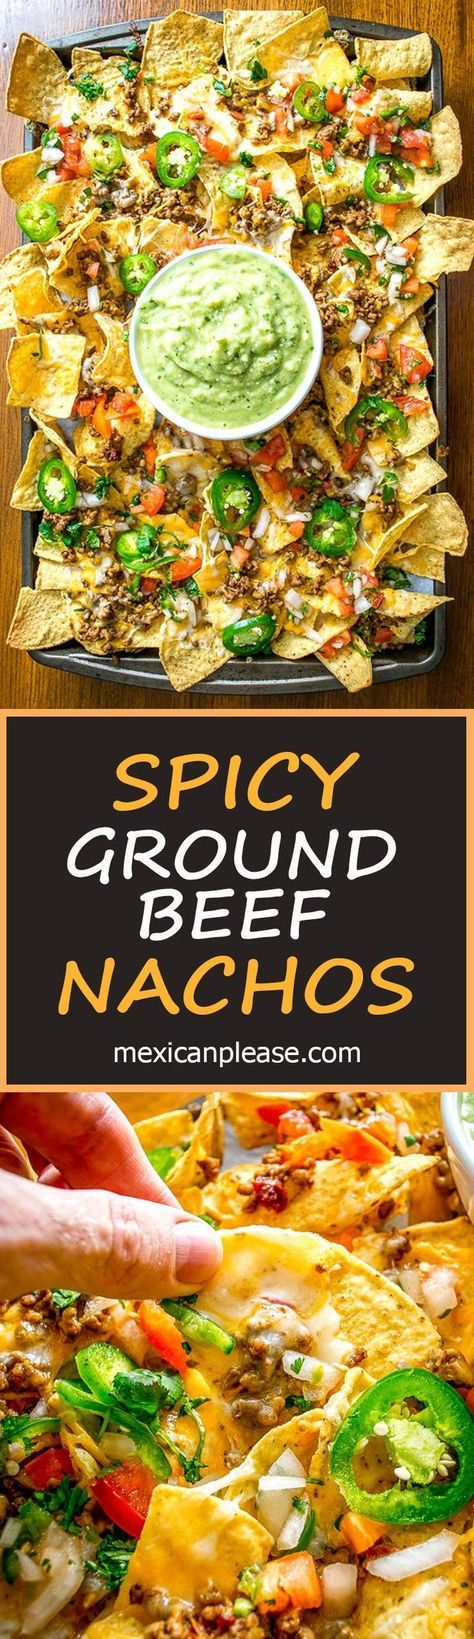 These Spicy Ground Beef Nachos have the potential to save your day! Chipotles in adobo give the beef real kick and when loaded on cheese covered tortilla chips they quickly become a go-to meal. Served with a homemade Avocado Salsa Verde and your choice of fixings. So good! #nachos http://mexicanplease.com